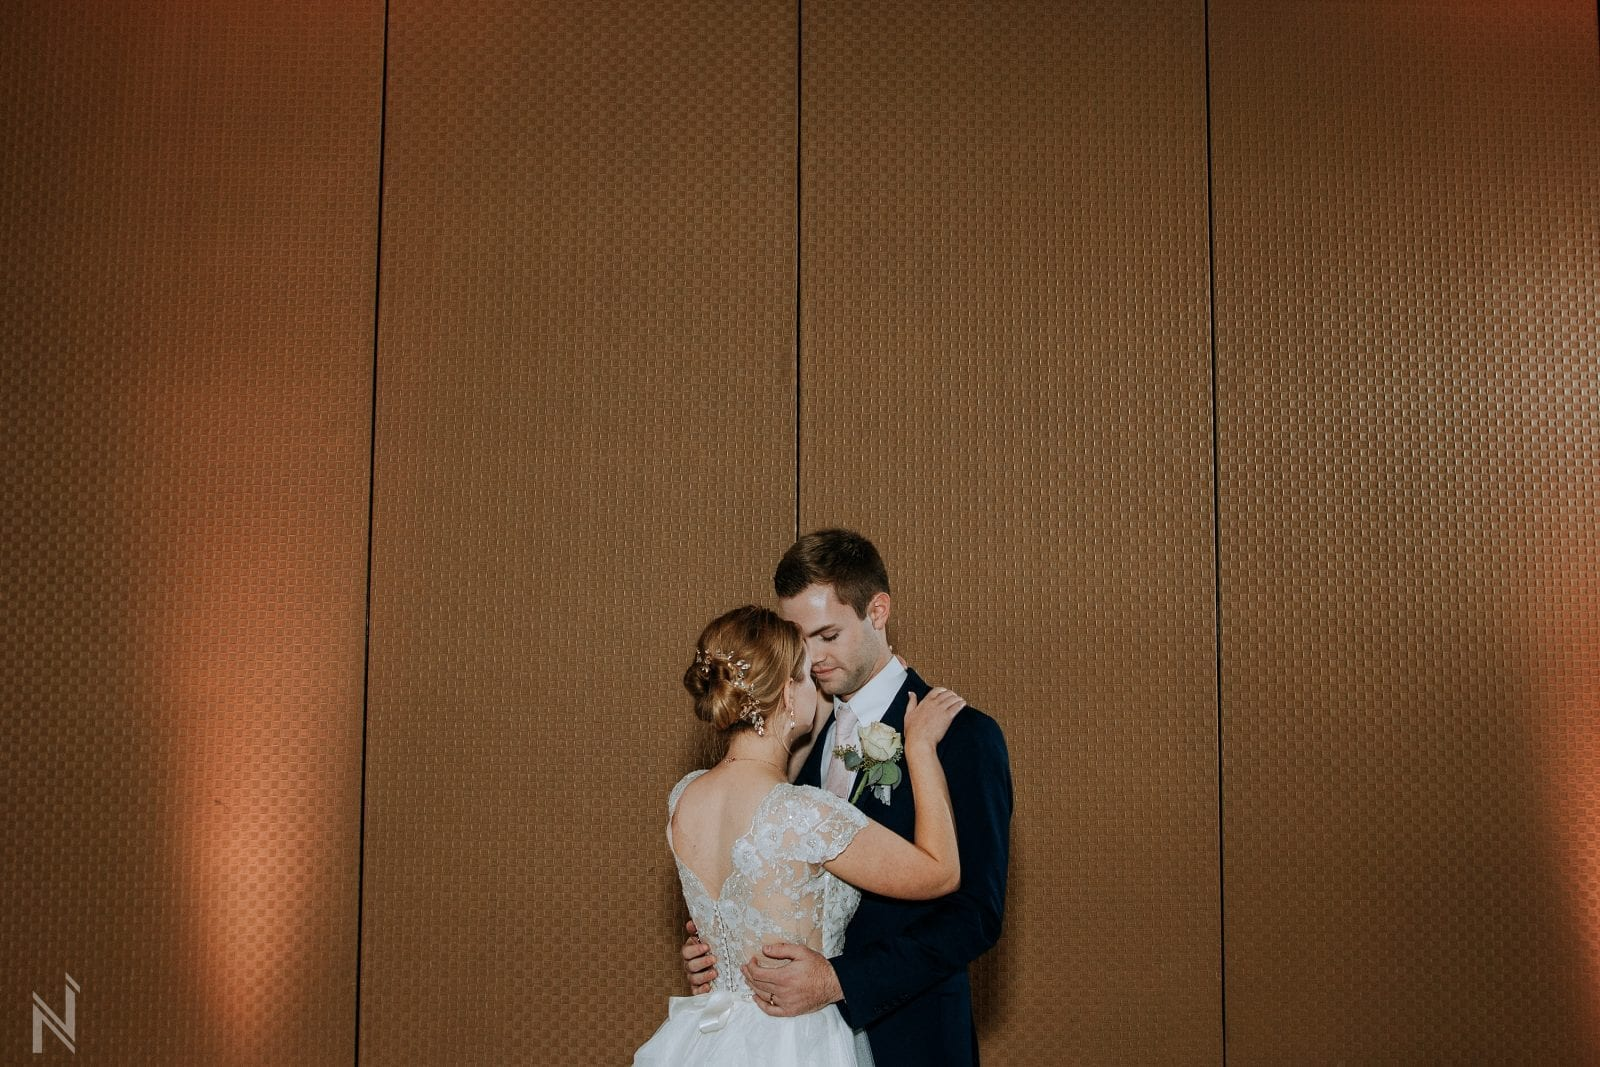 bride and groom first dance at st. Louis Zoo wedding reception photography at Lakeside Cafe